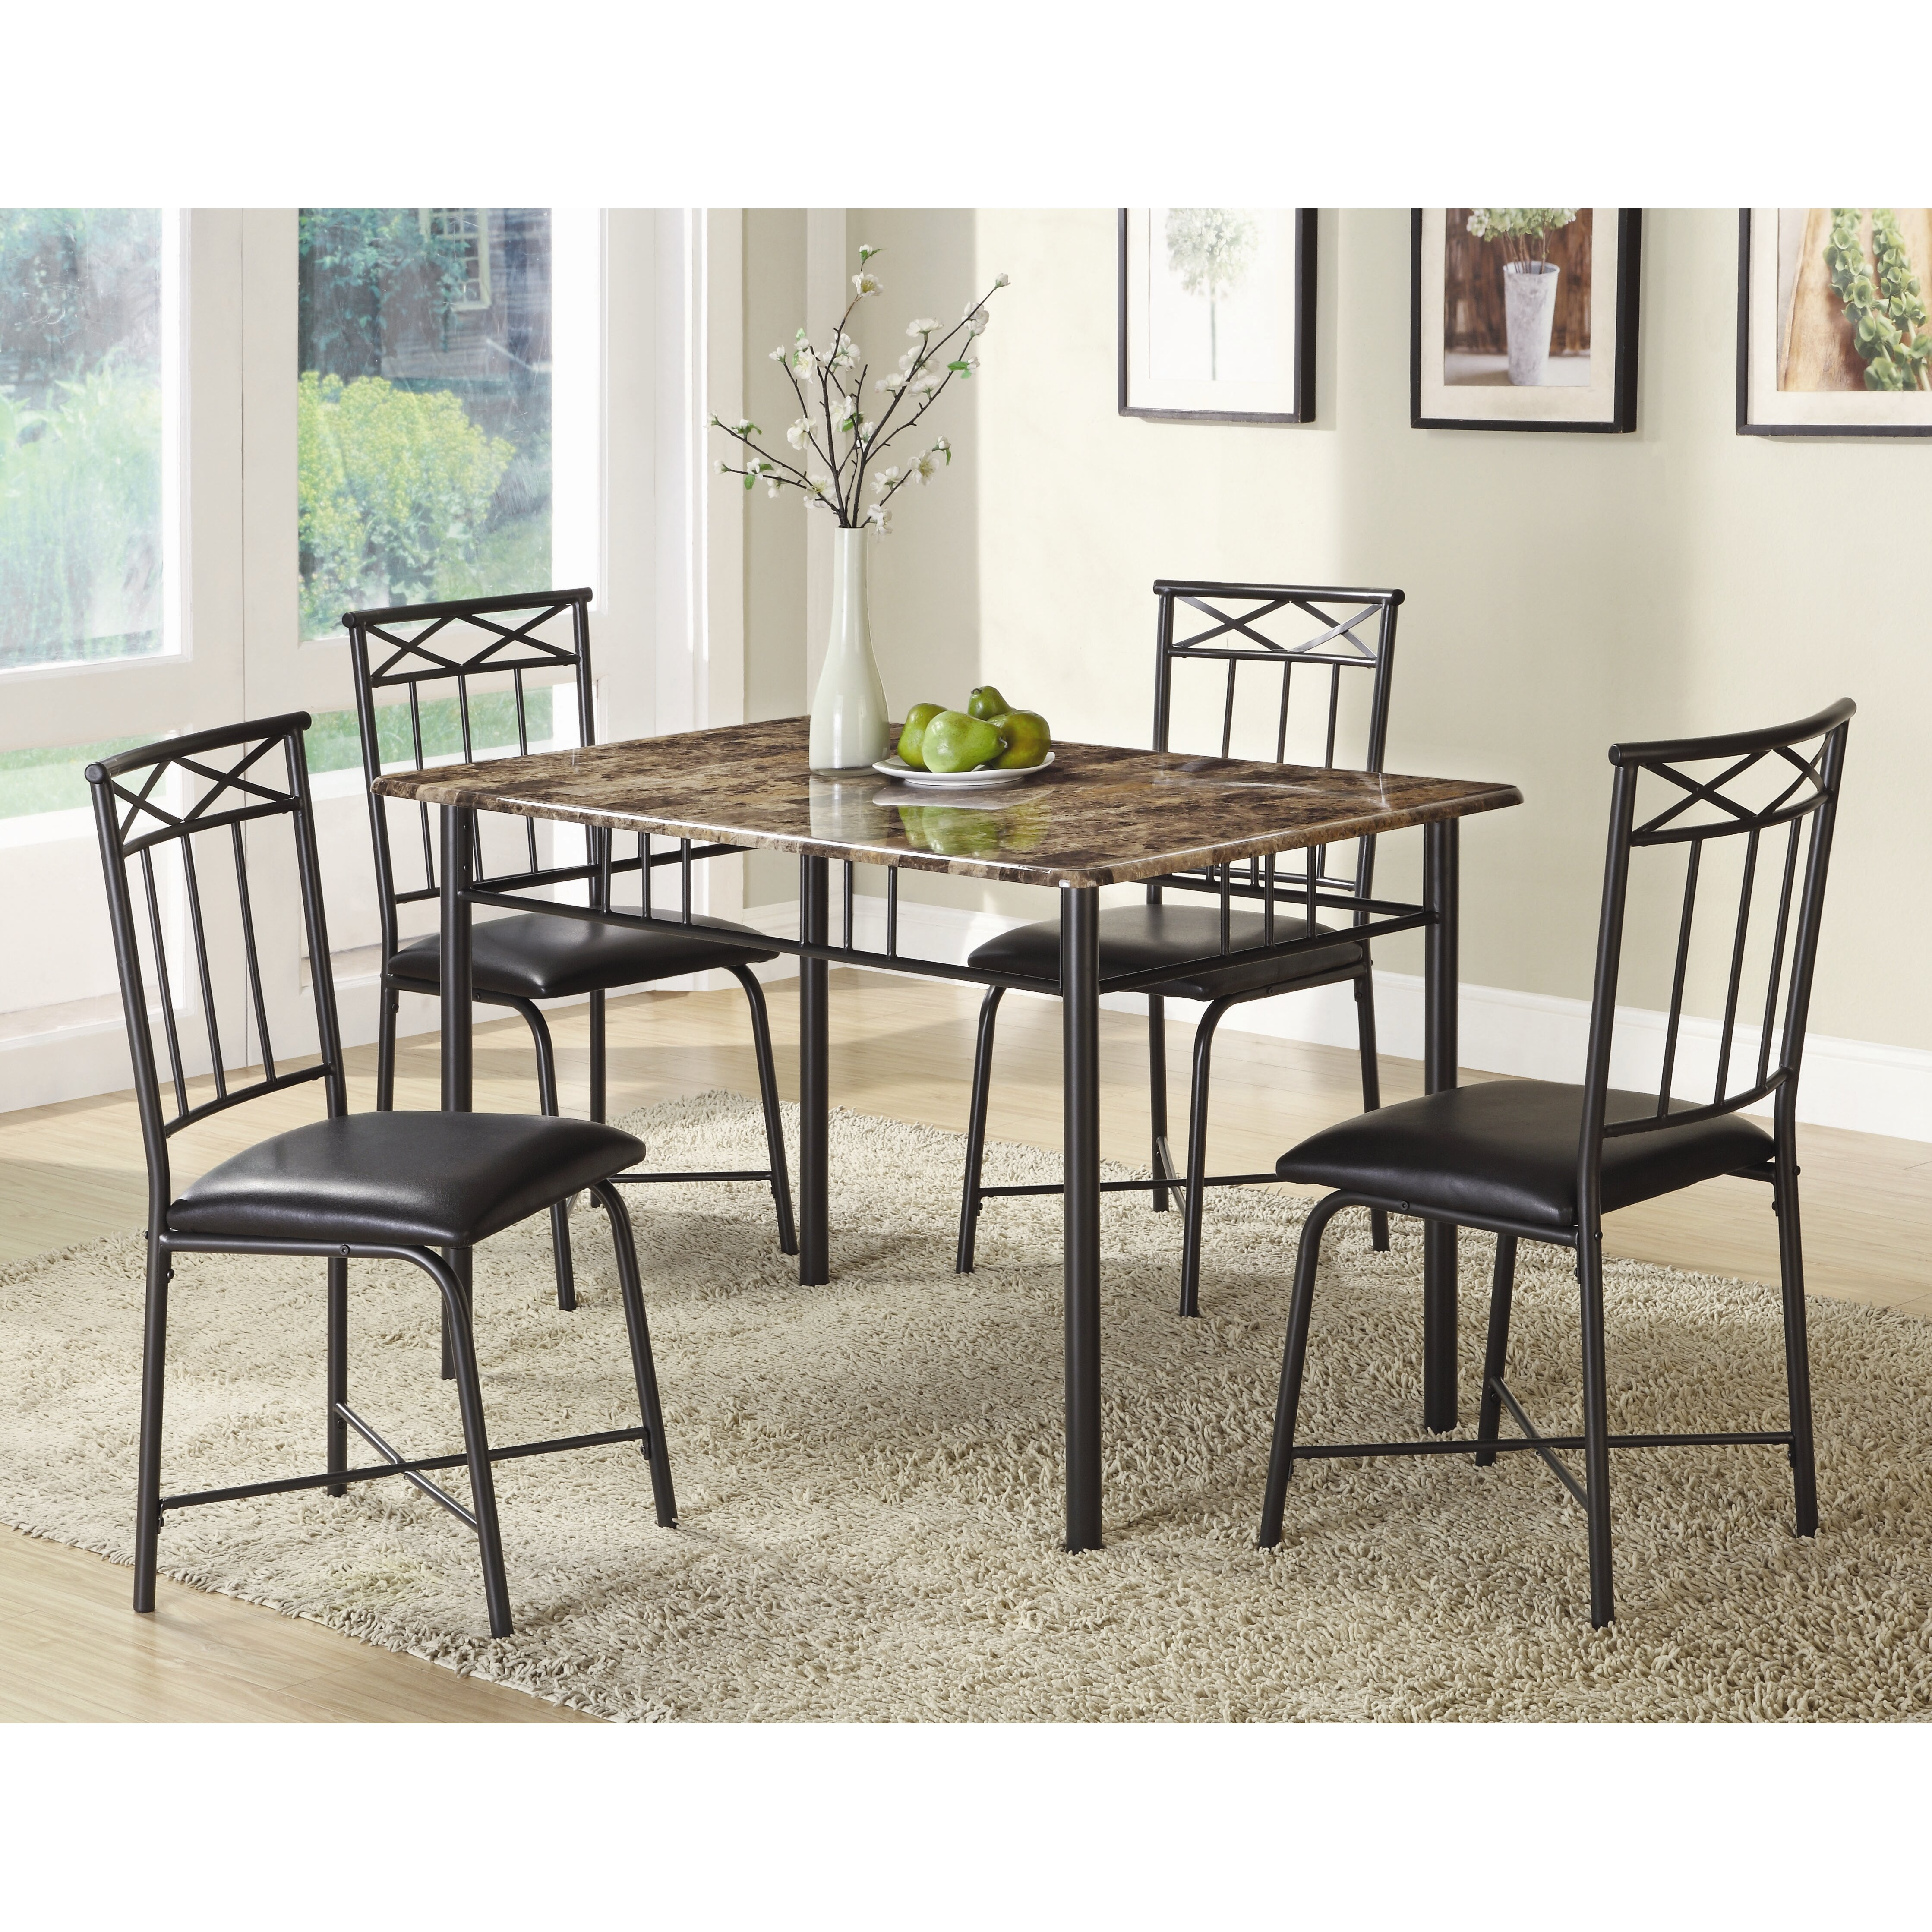 Wildon home little elm 5 piece dining set for Wildon home dining